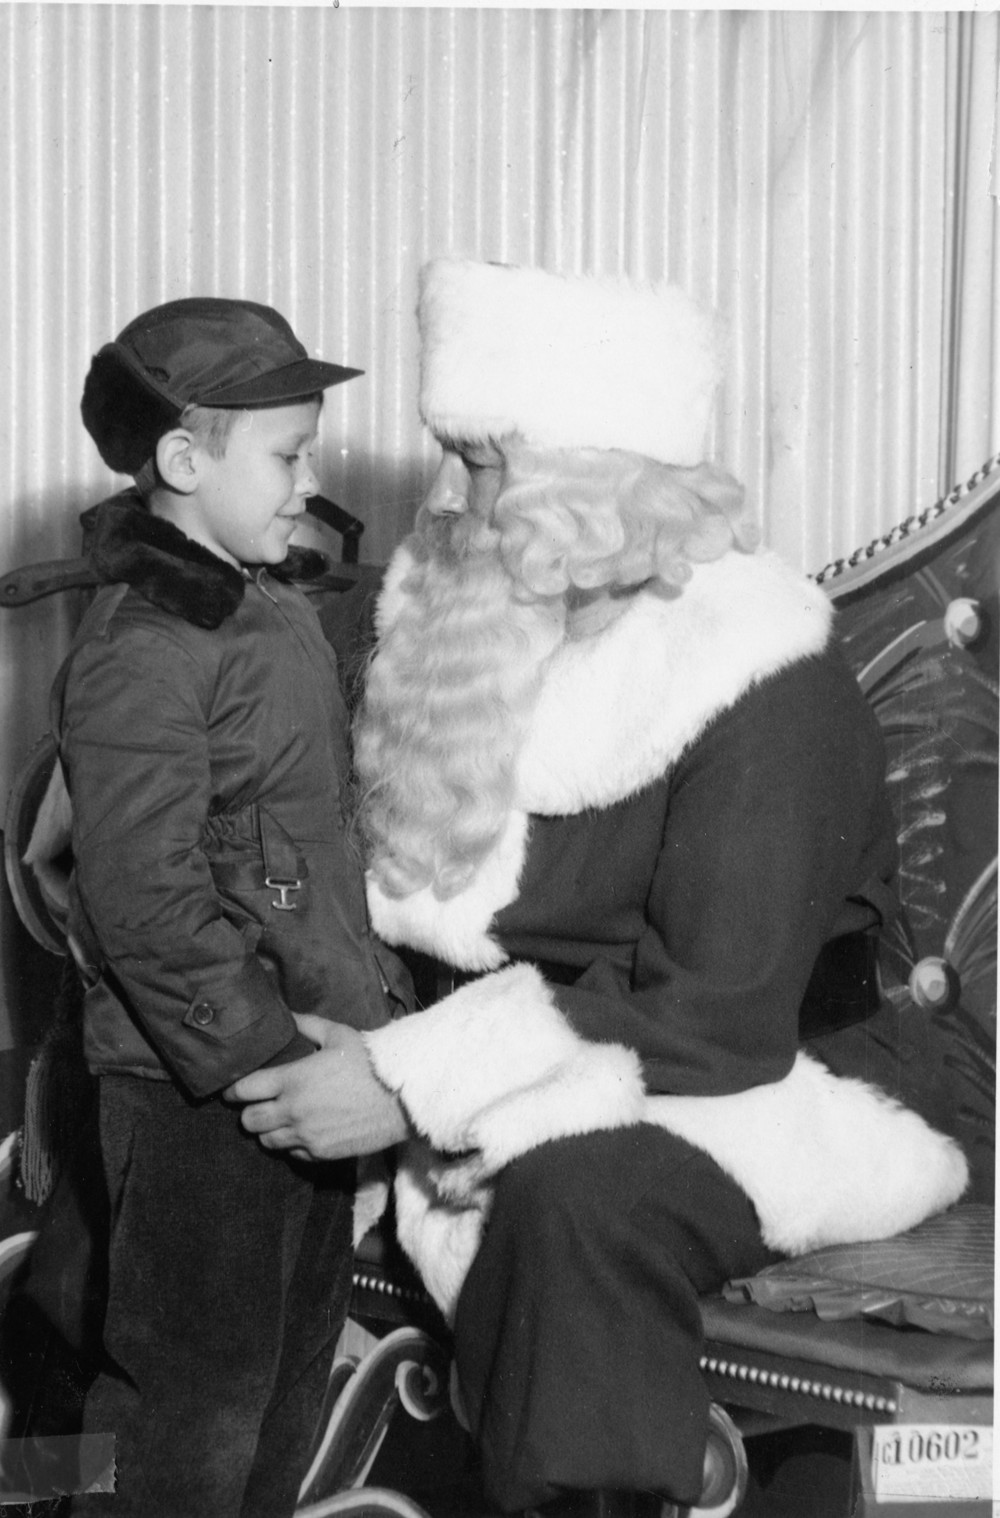 my dad Bill with Santa